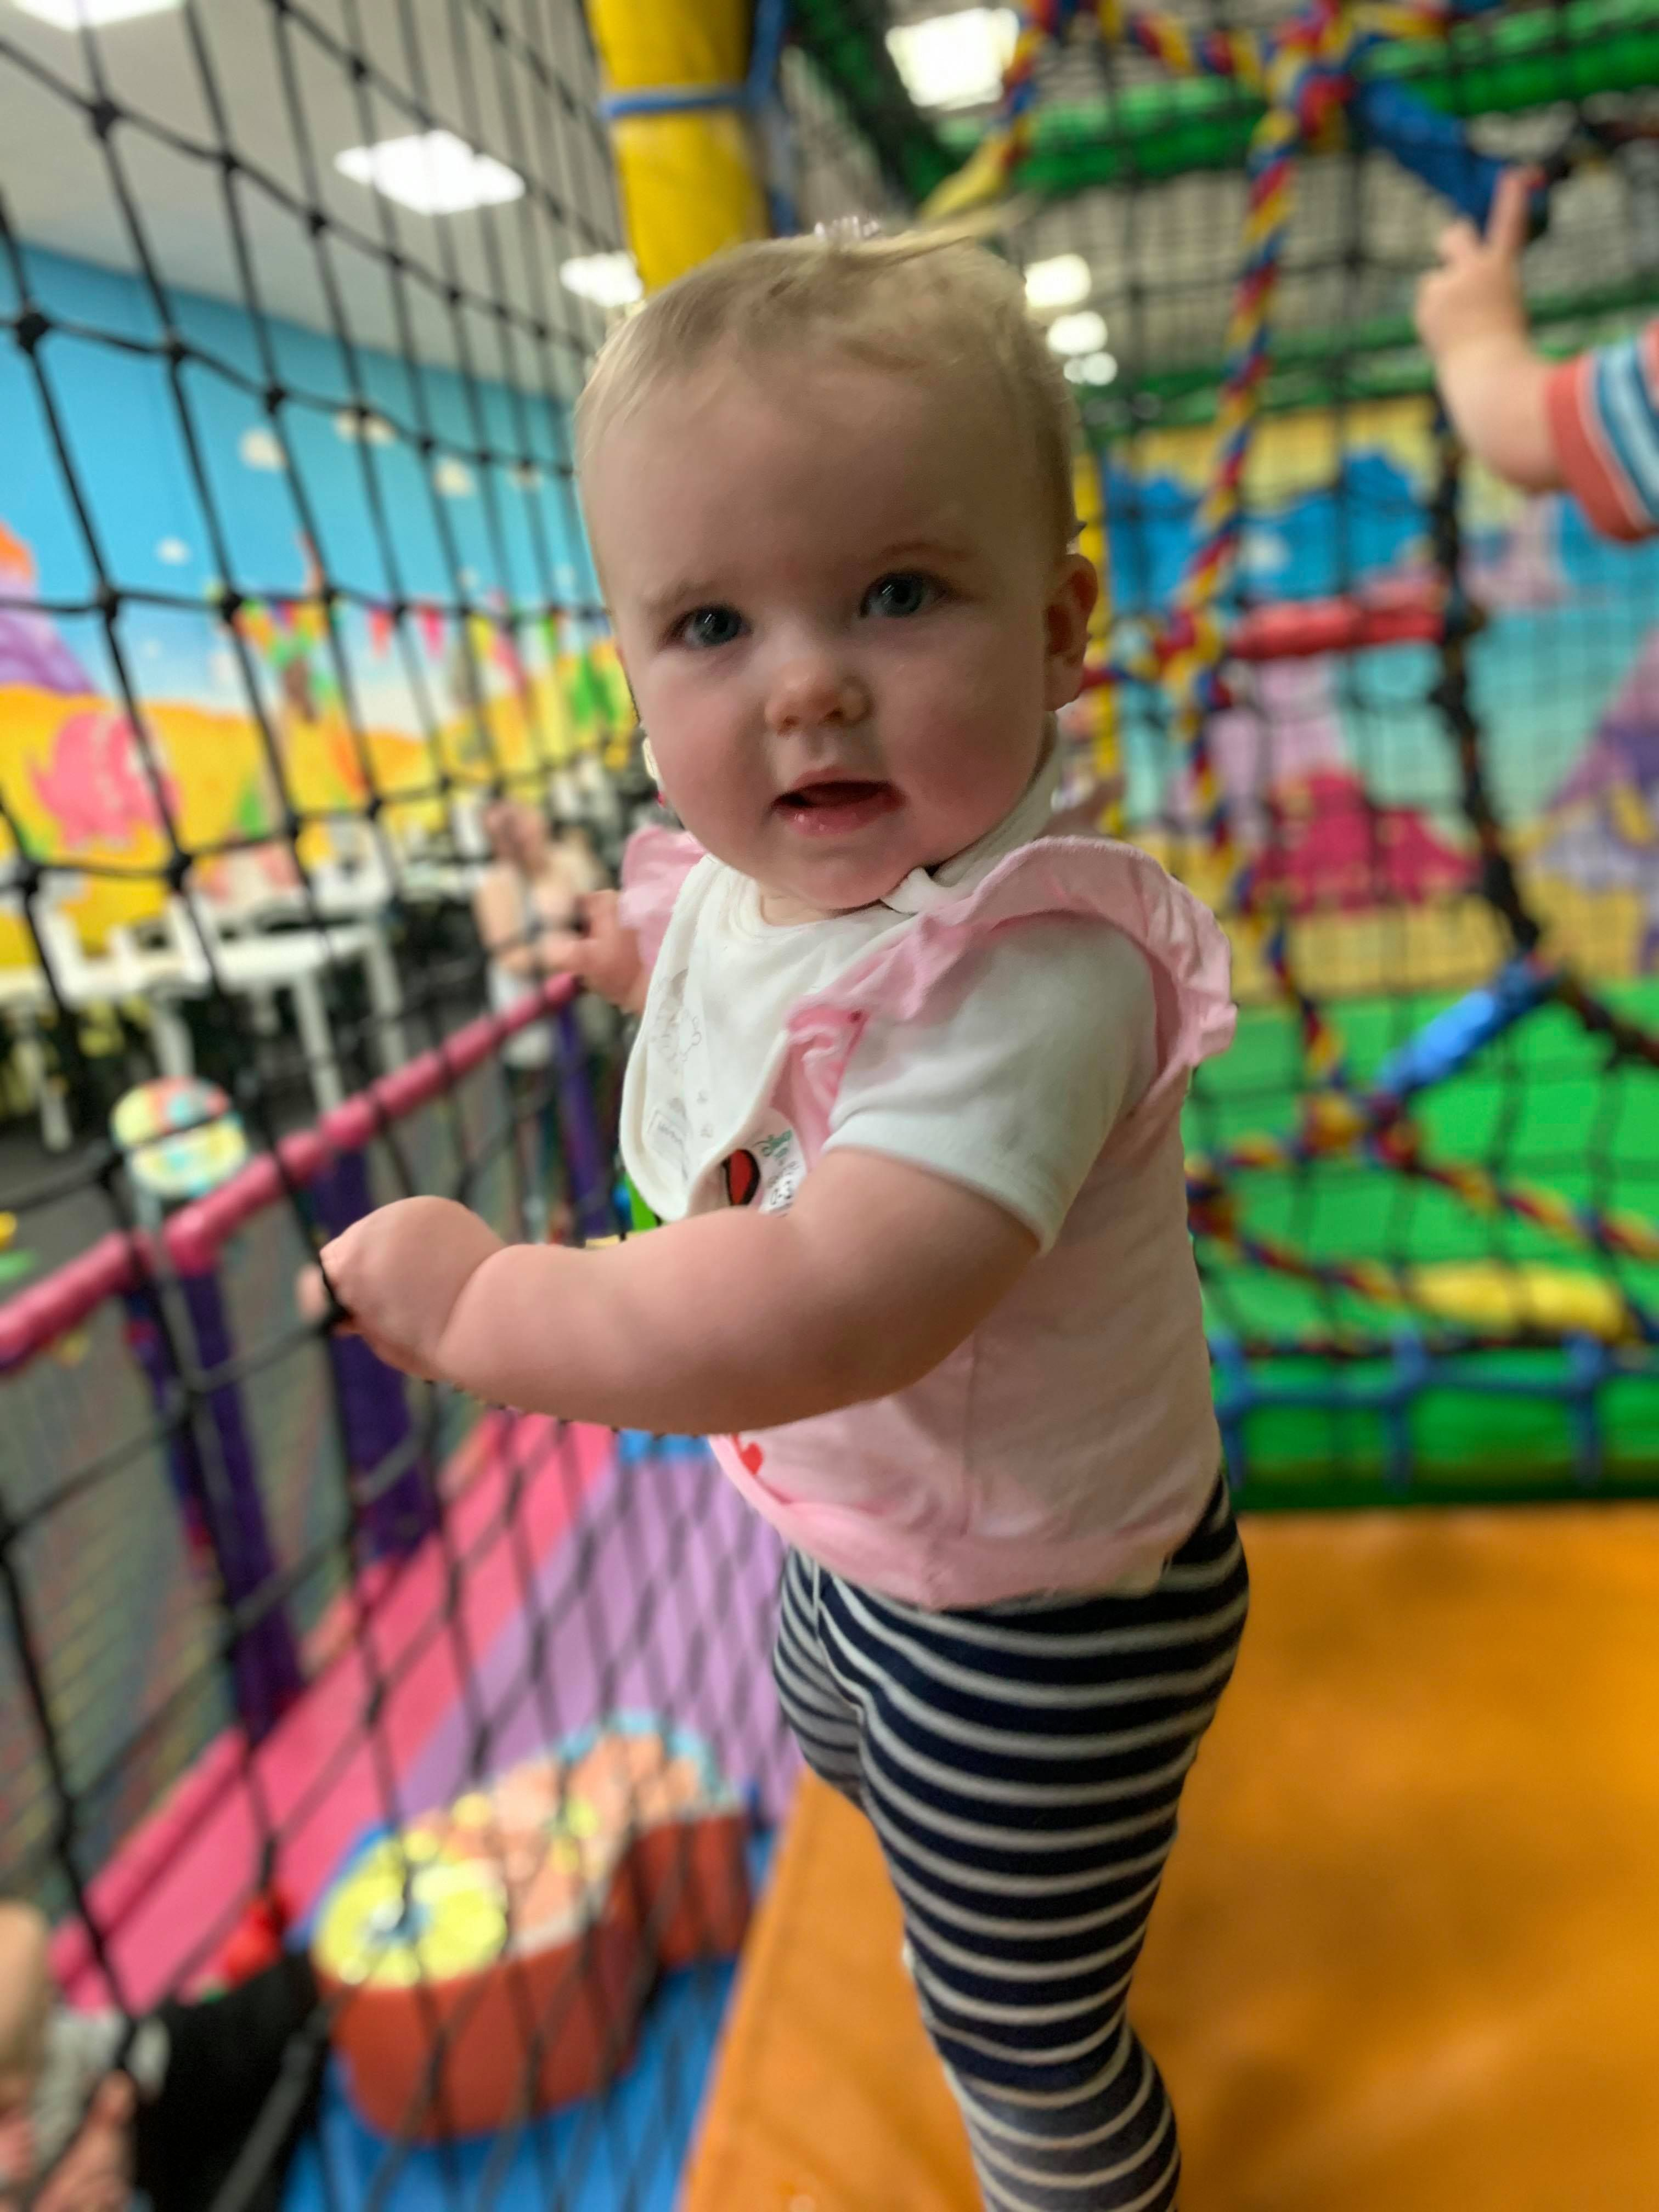 MHL - Child at soft play